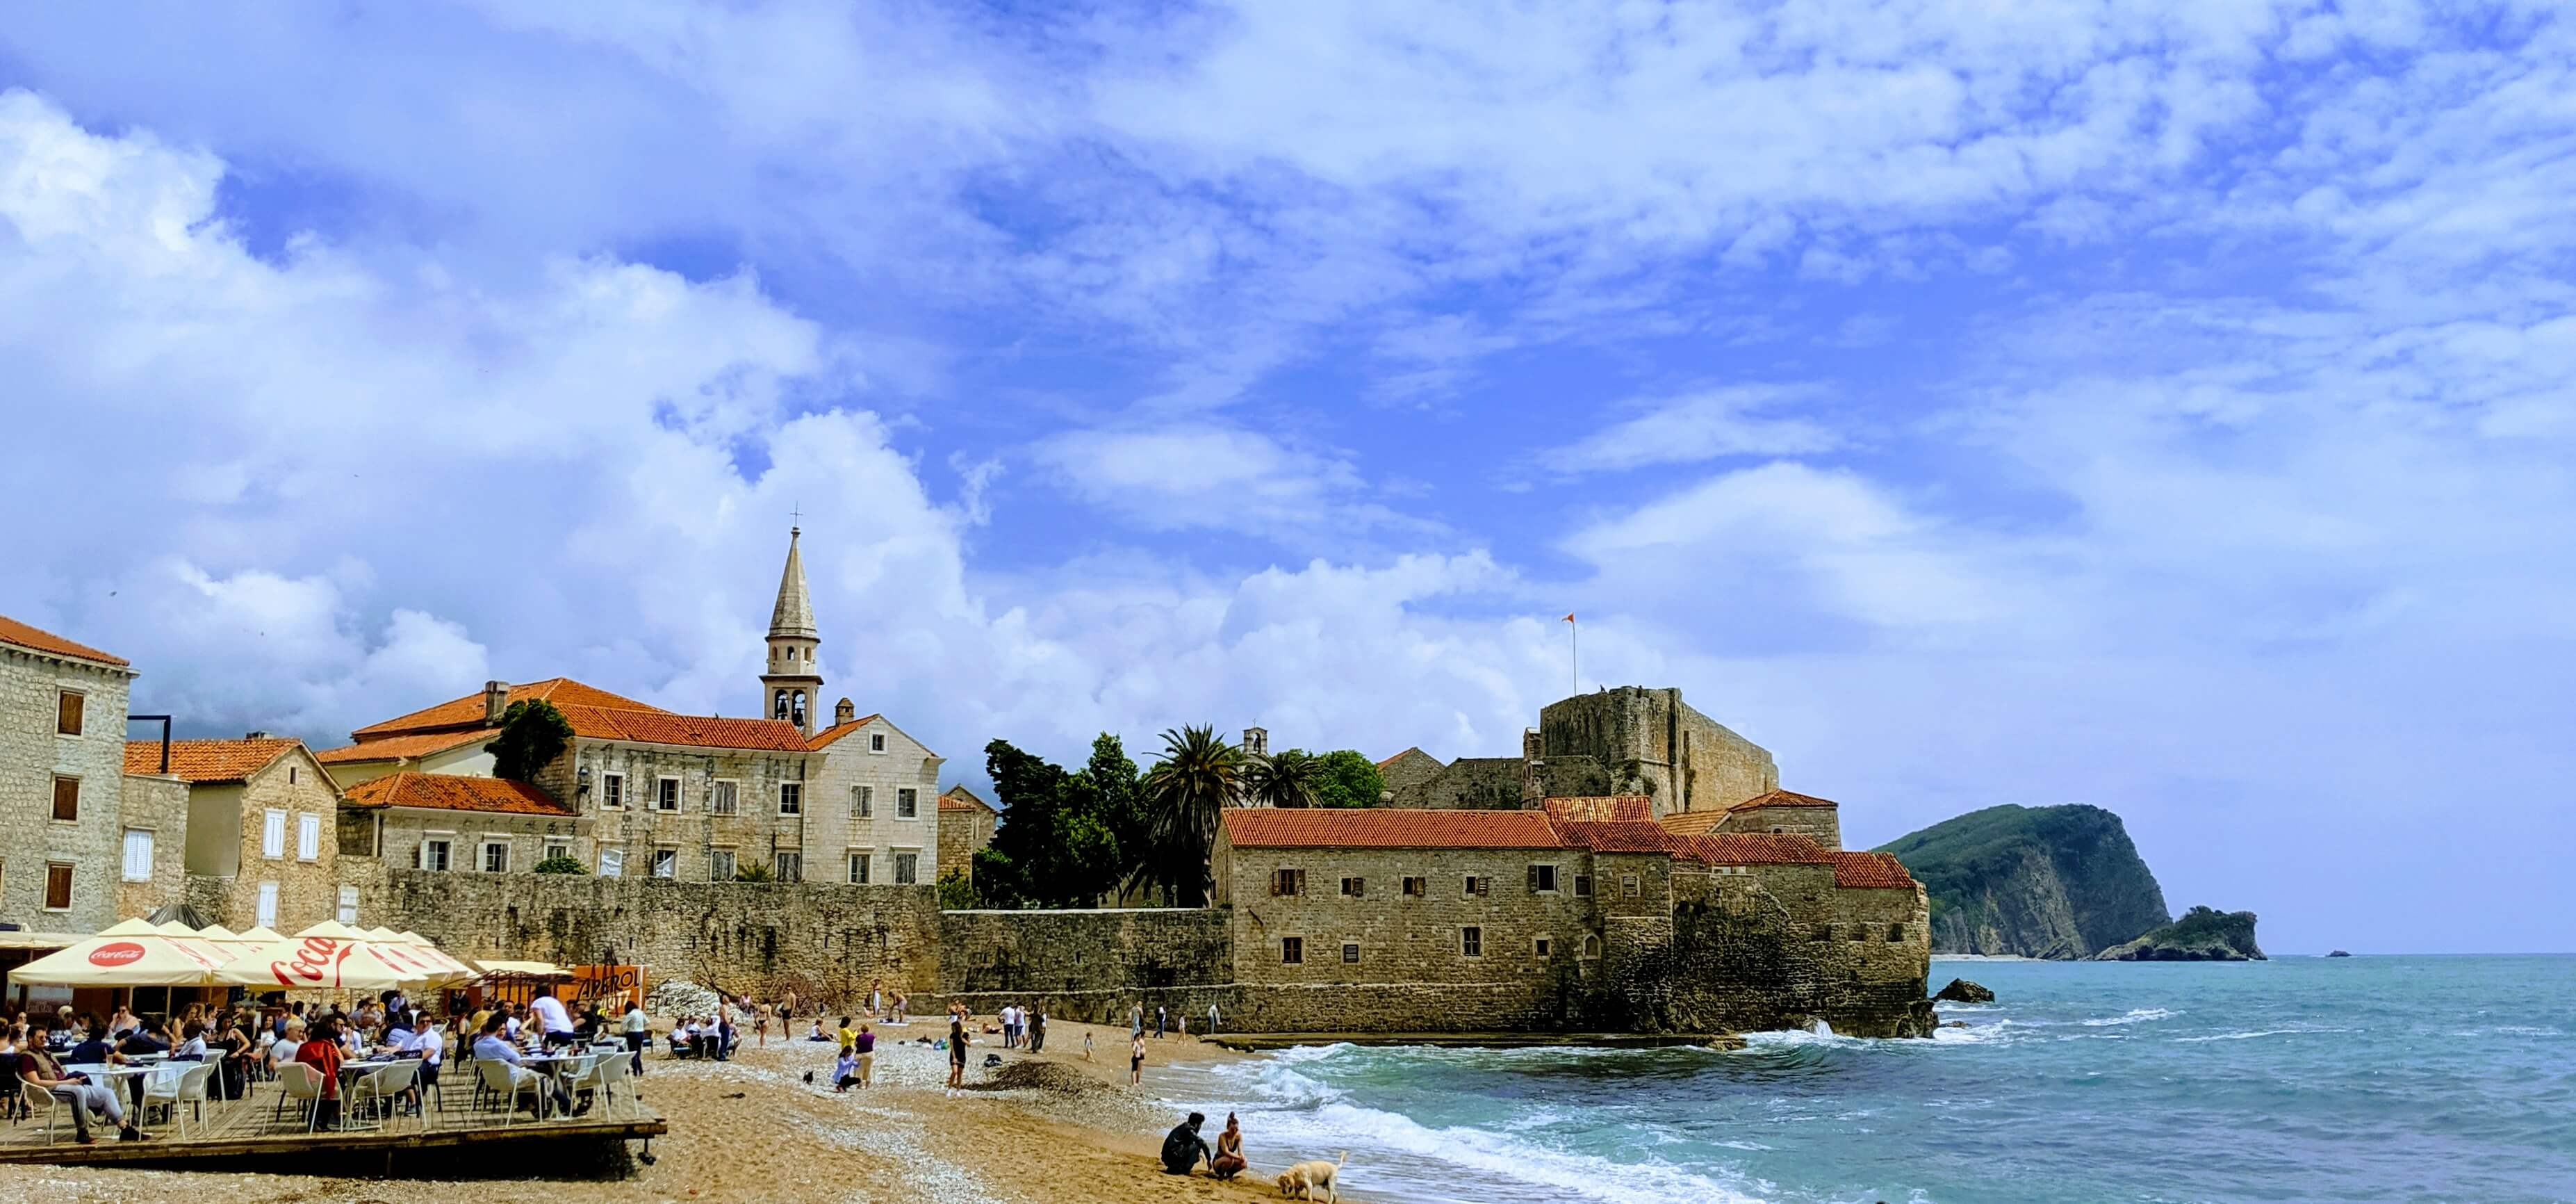 Budva's Old Town from the beach.